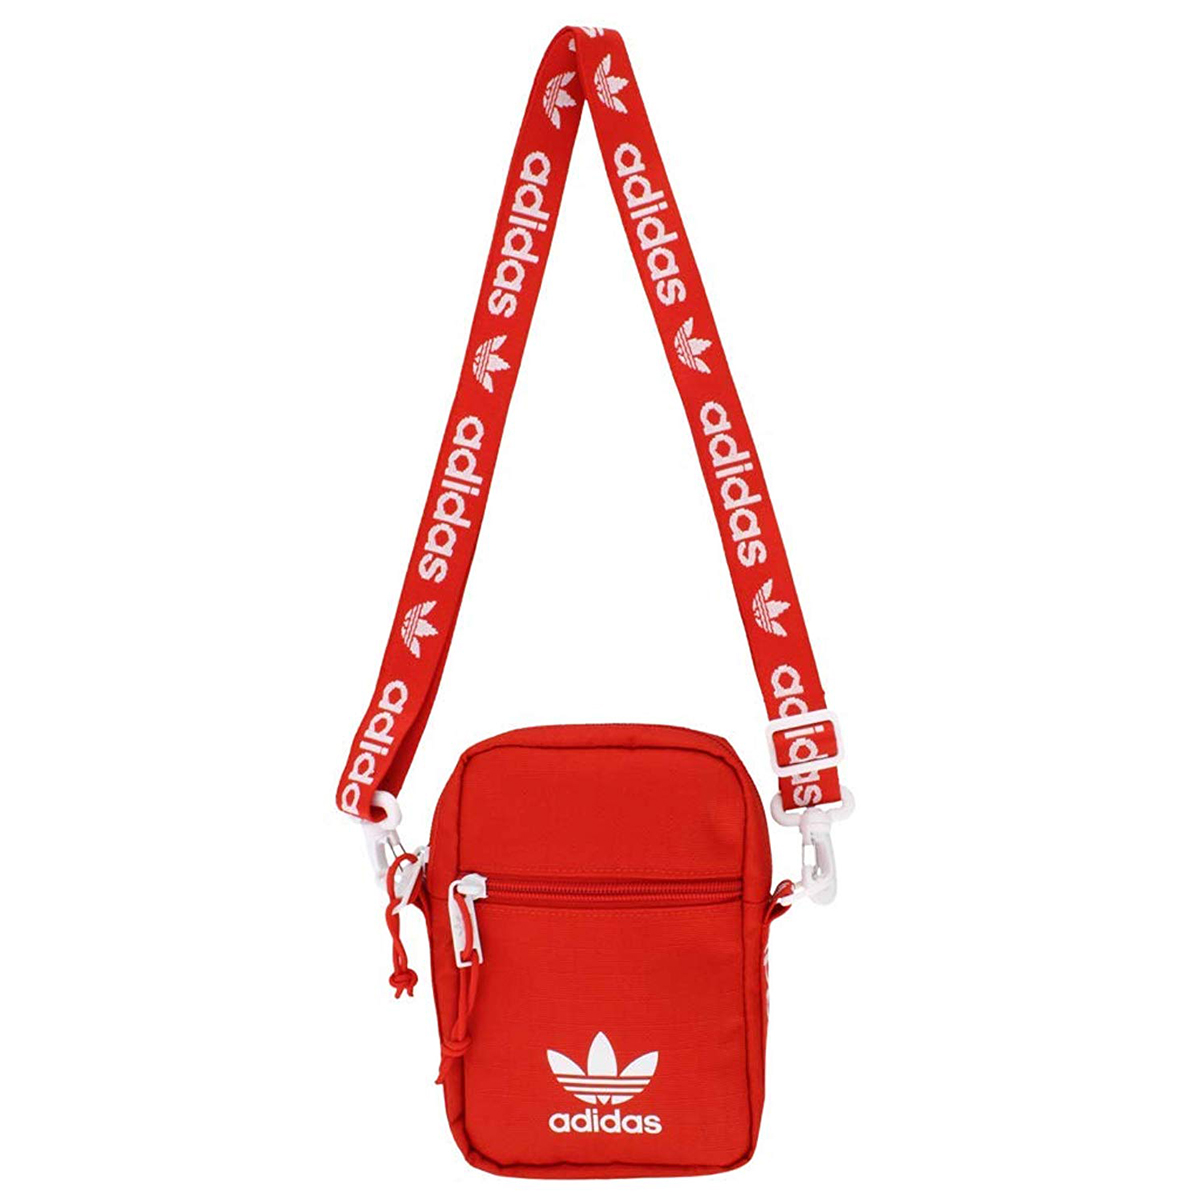 b262493ff Adidas Originals Festival Crossbody Bag